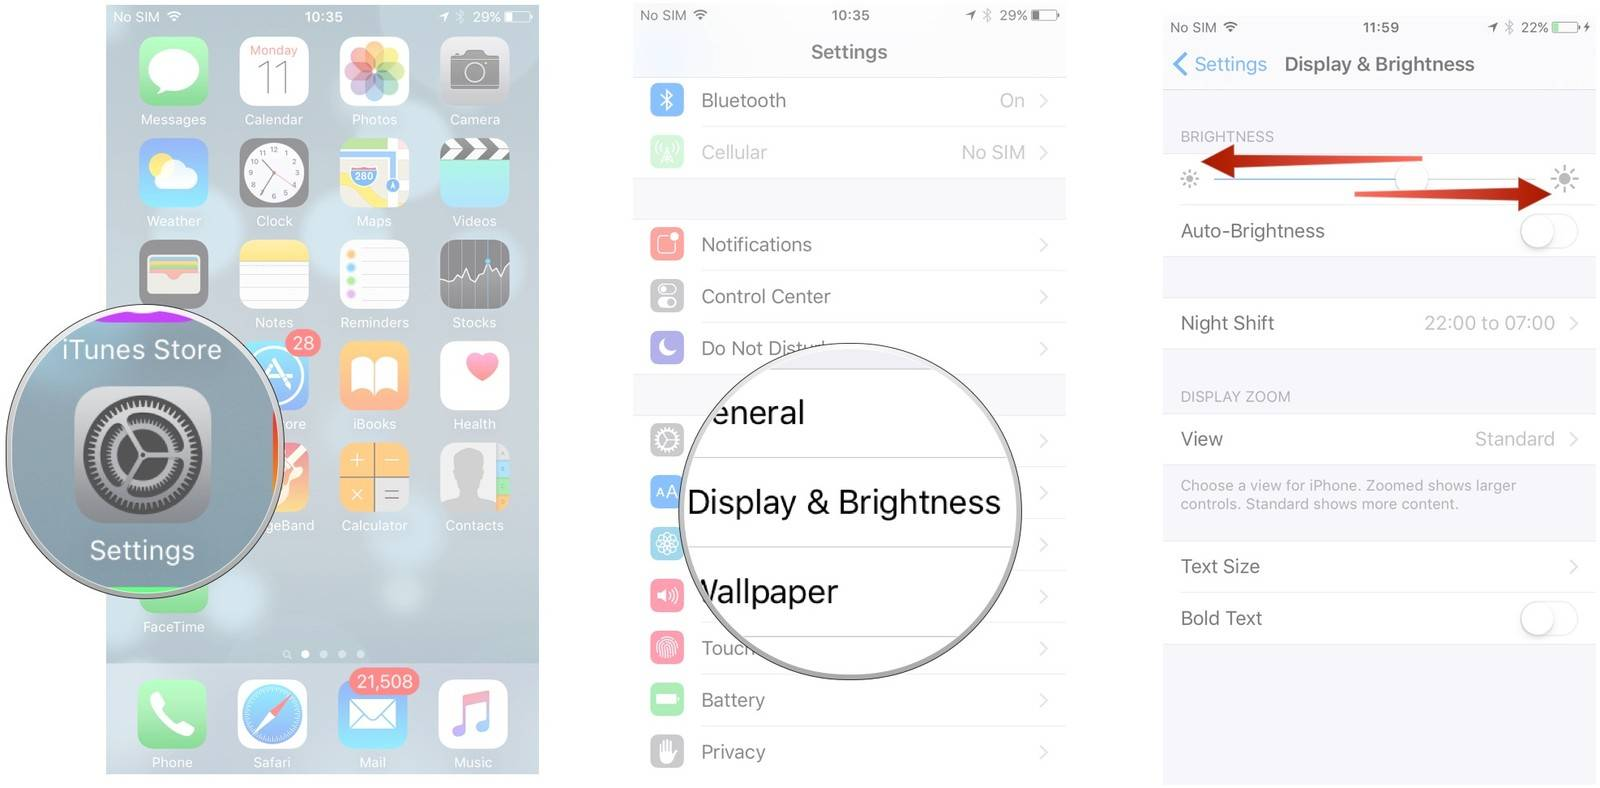 Save battery on iPhone/iPad/iPod Touch - Reduce brightness